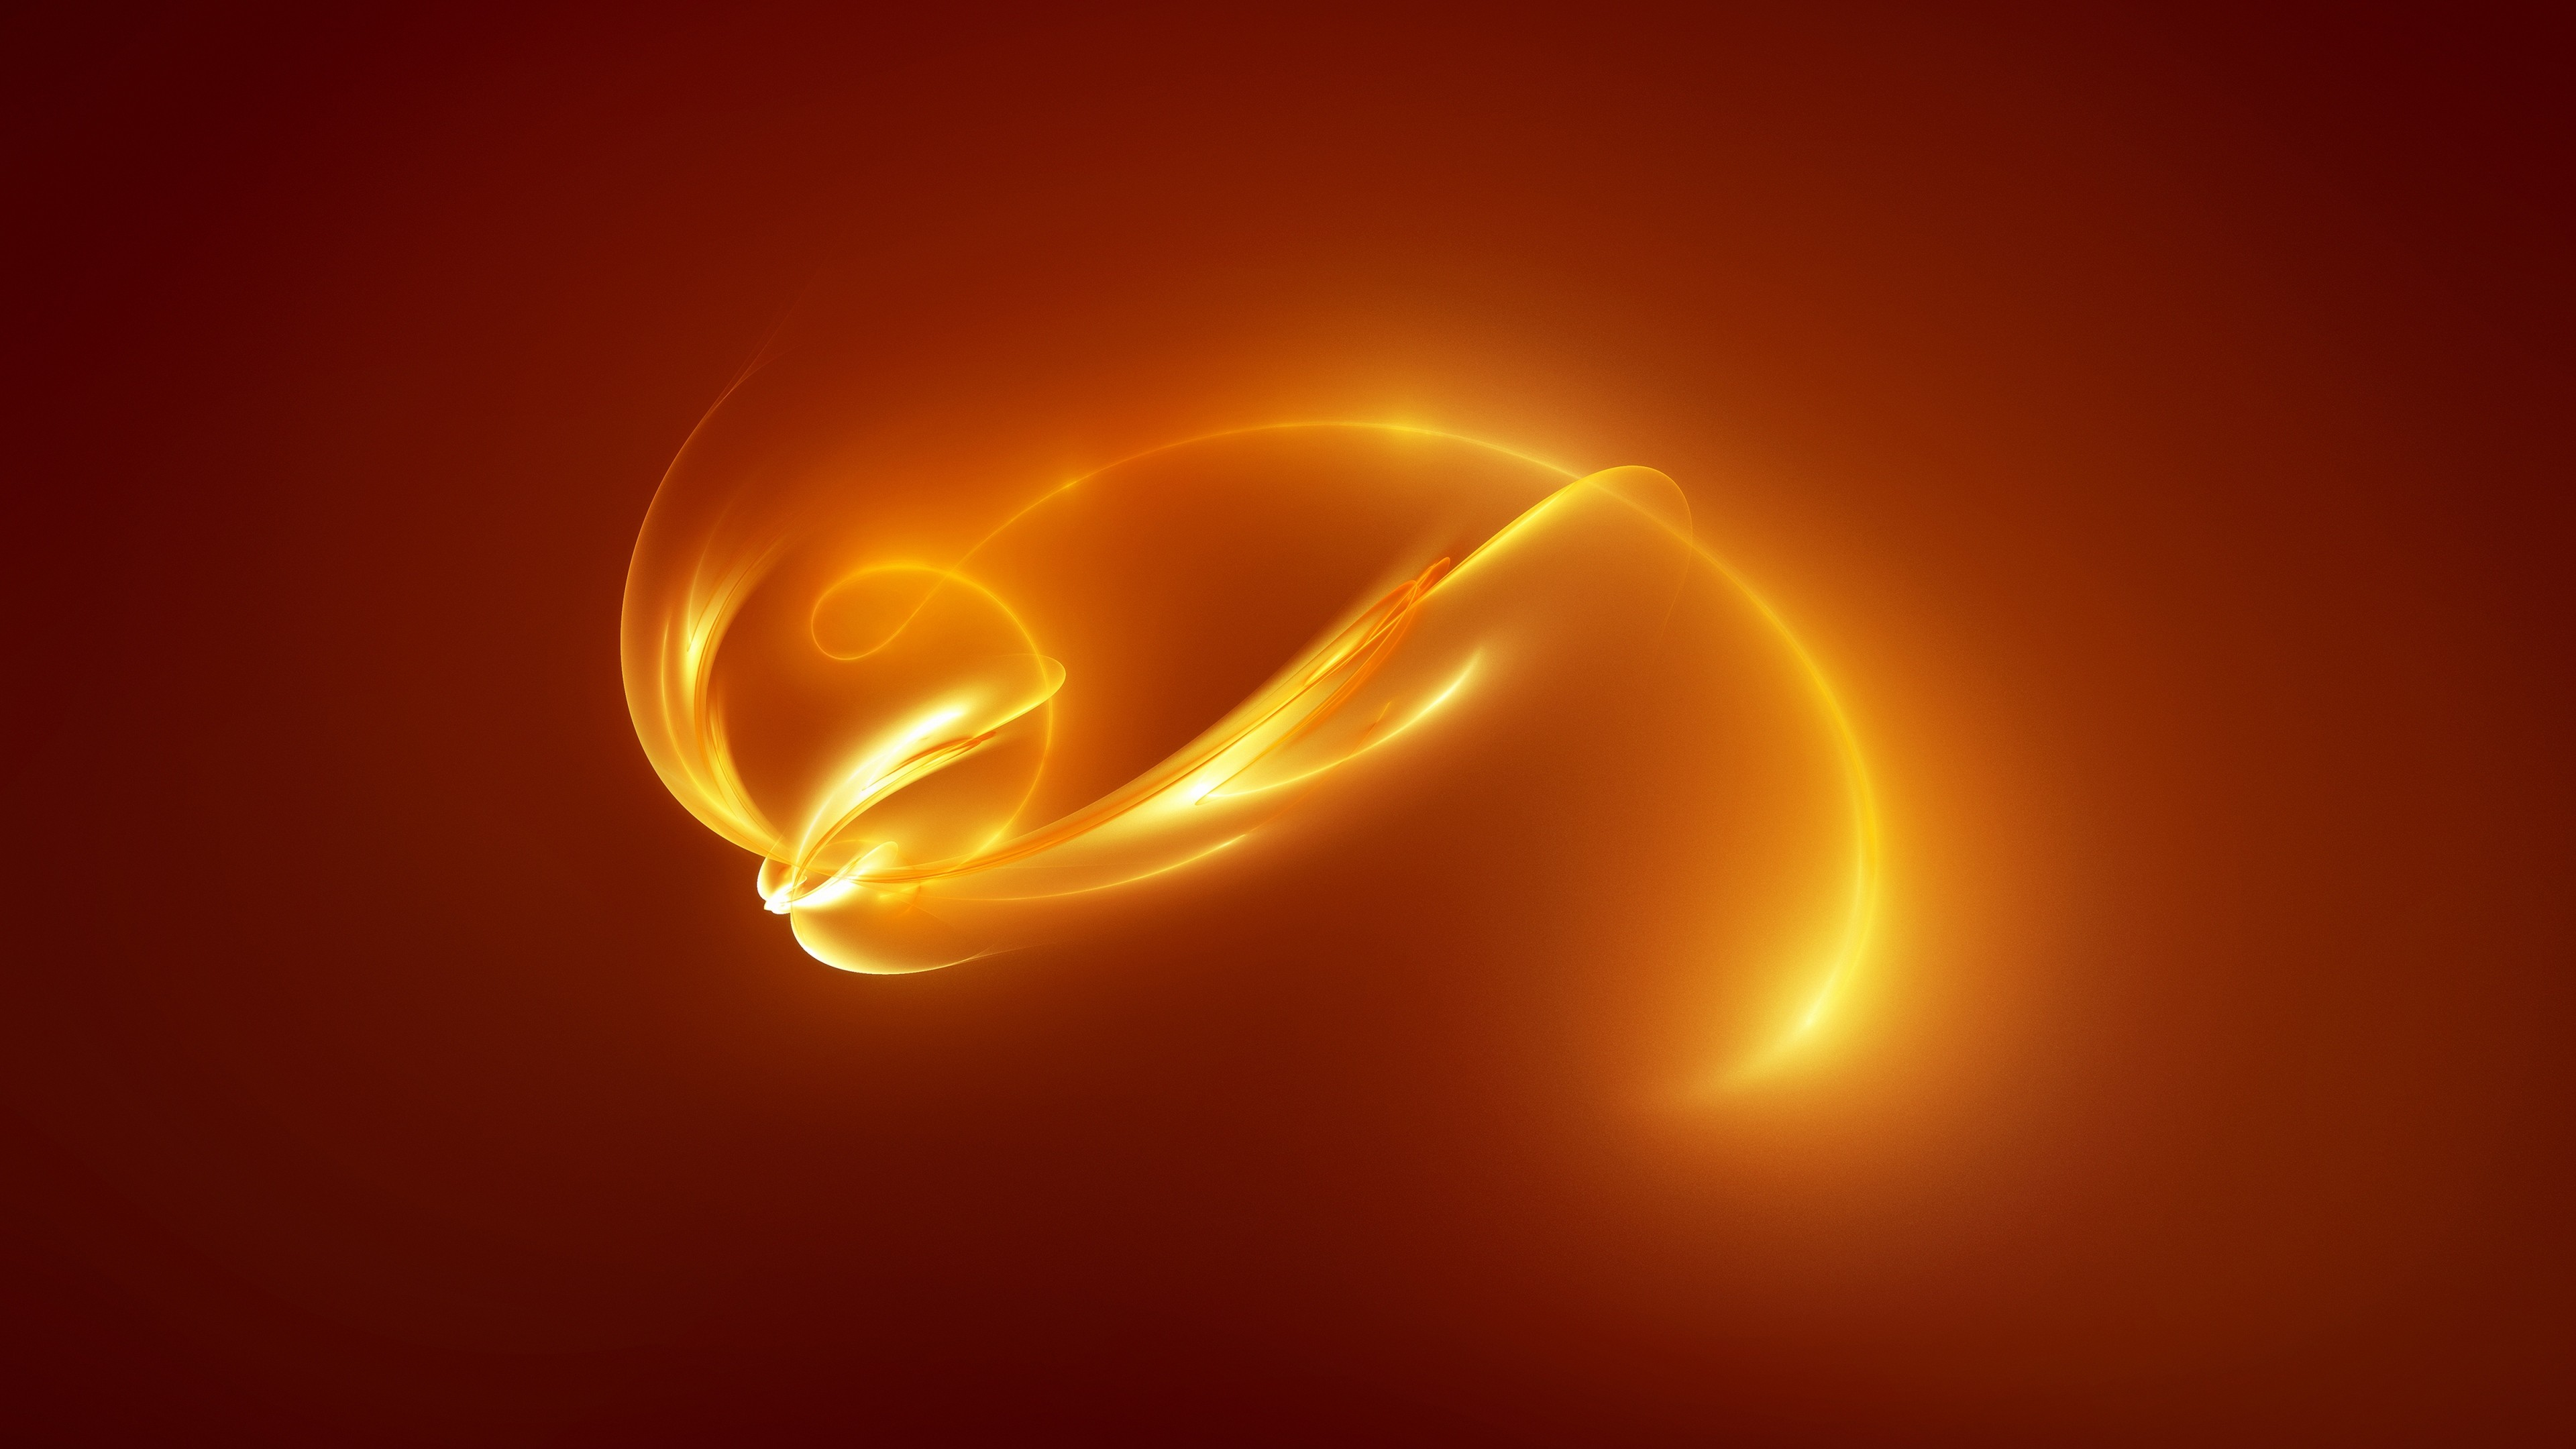 orange light abstract 1539371192 - Orange Light Abstract - orange wallpapers, hd-wallpapers, digital art wallpapers, artwork wallpapers, artist wallpapers, abstract wallpapers, 4k-wallpapers